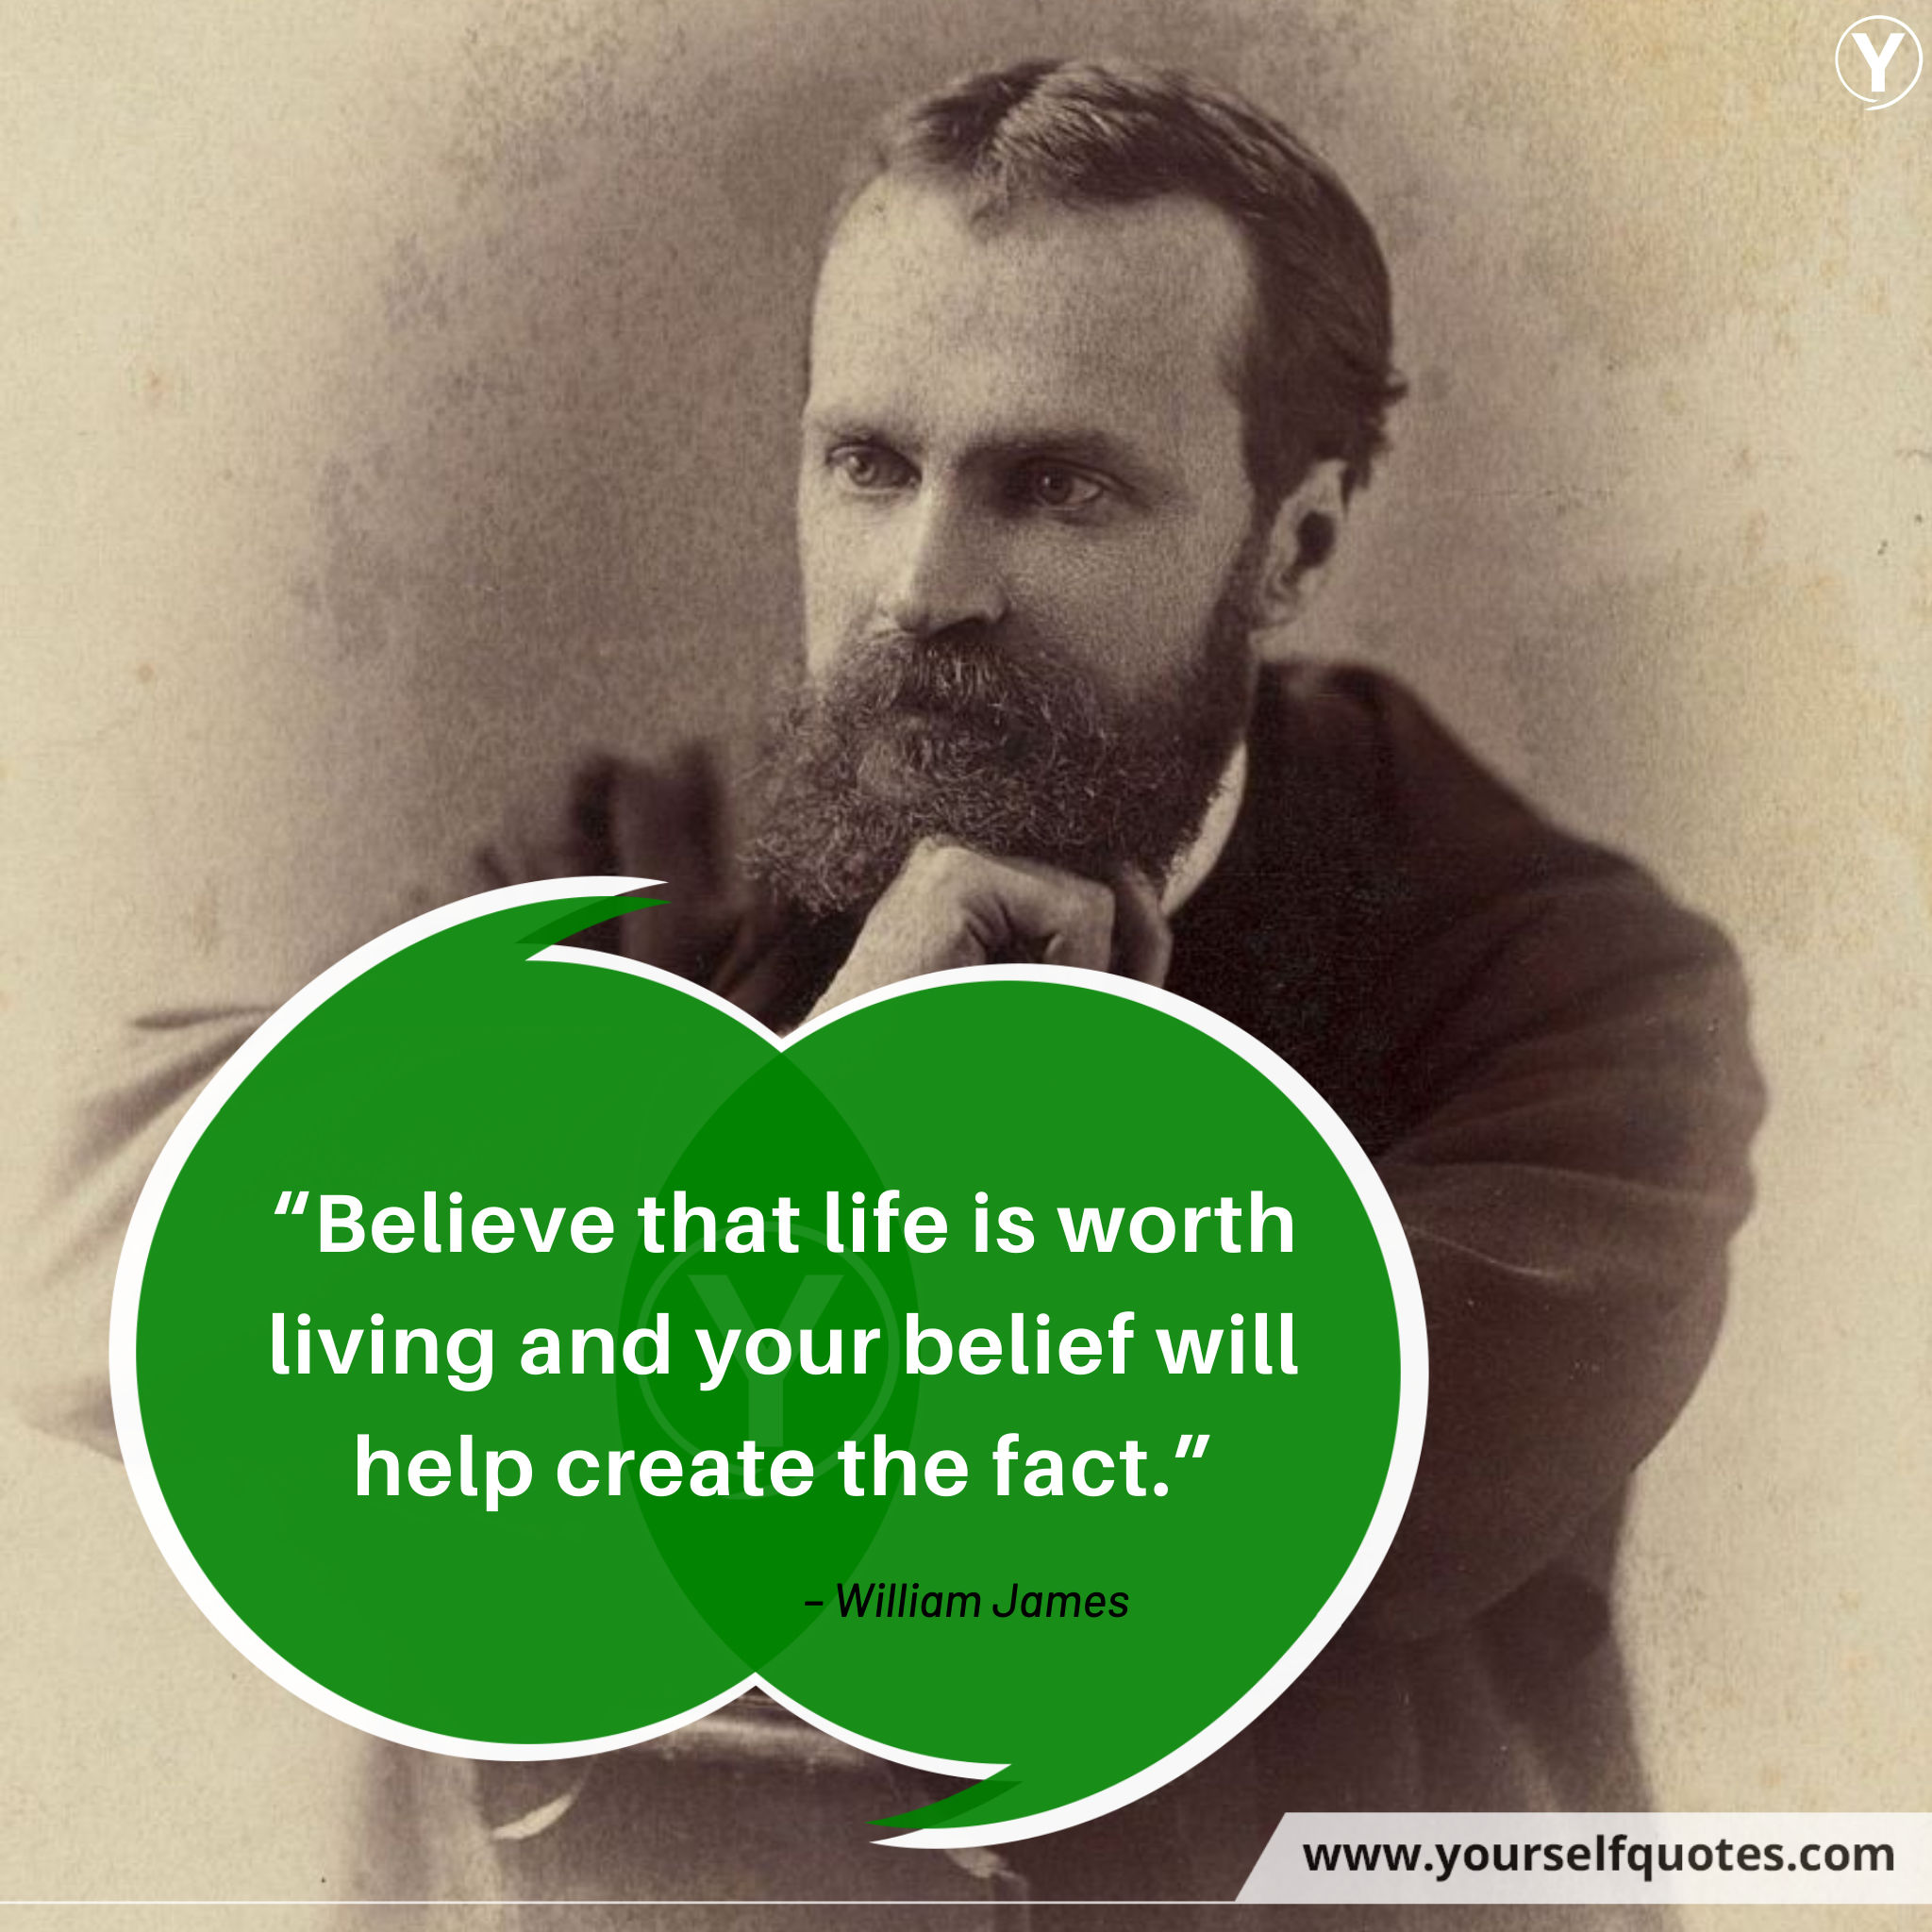 Quotes-on-Life-by-William-James